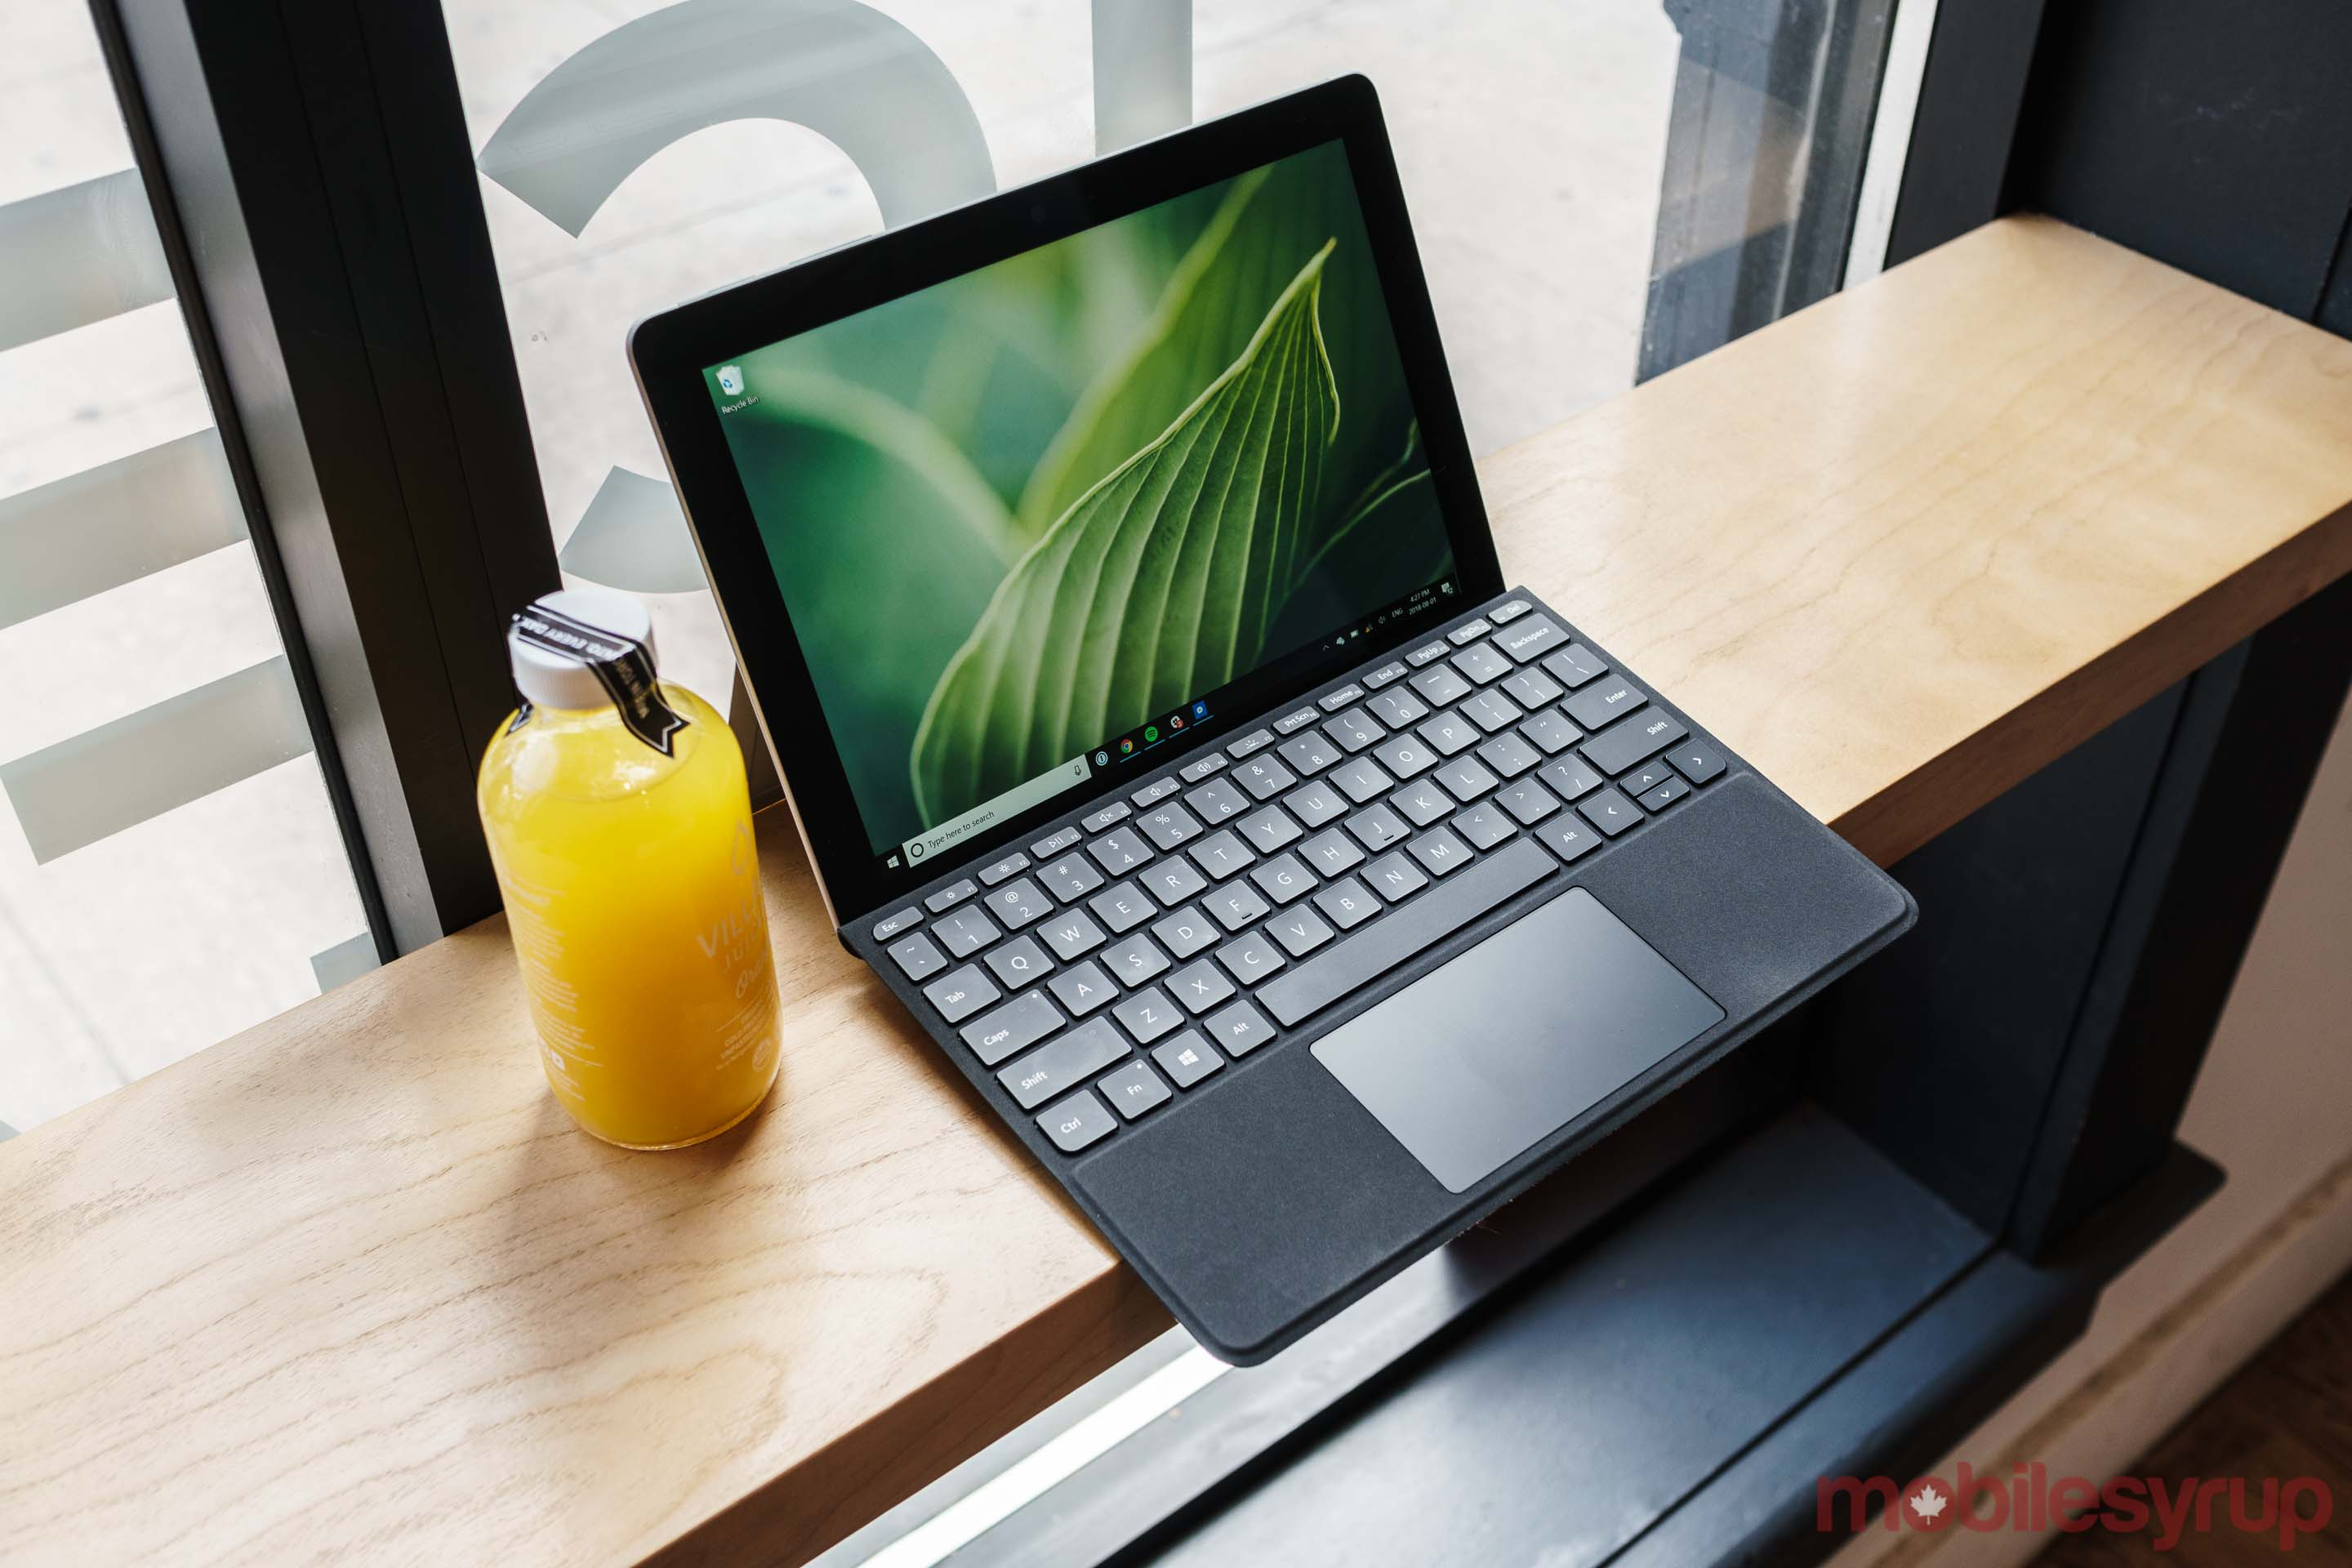 Surface Go is Microsoft's smallest and thinnest Surface to date